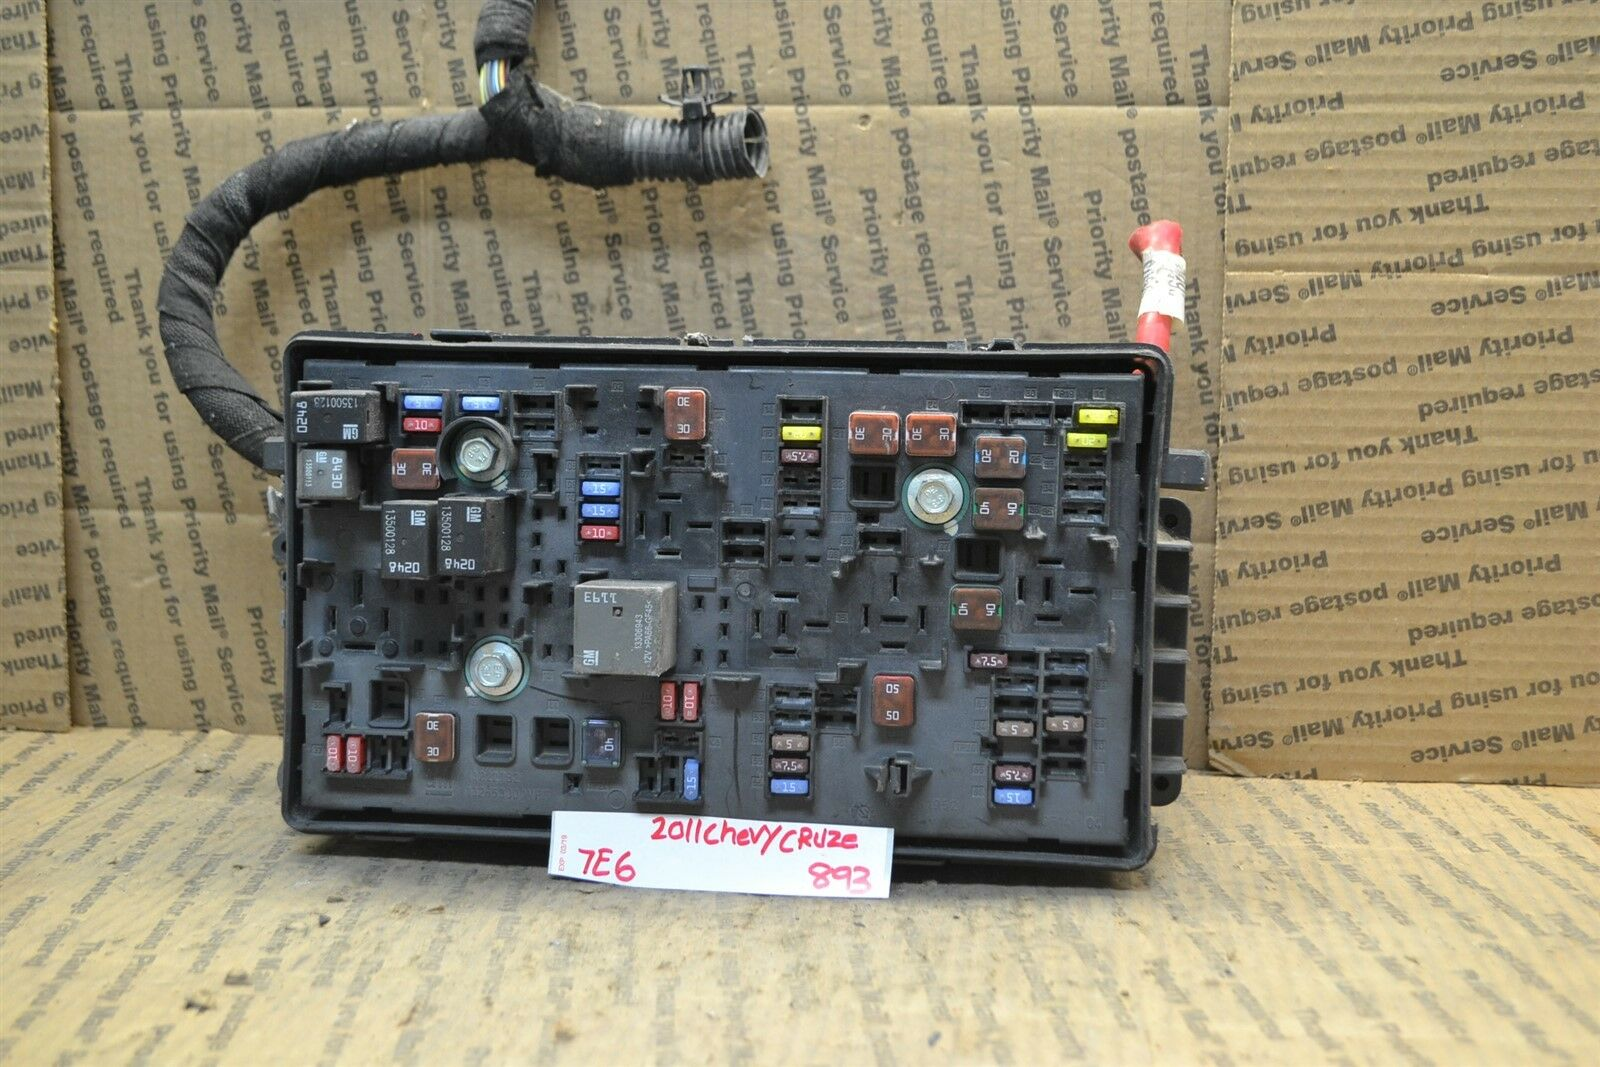 Used Chevrolet Cruze Computers Chips Cruise Control And Related 2011 Chevy Fuse Box 2012 Junction Oem 96982033 Module 893 7e6